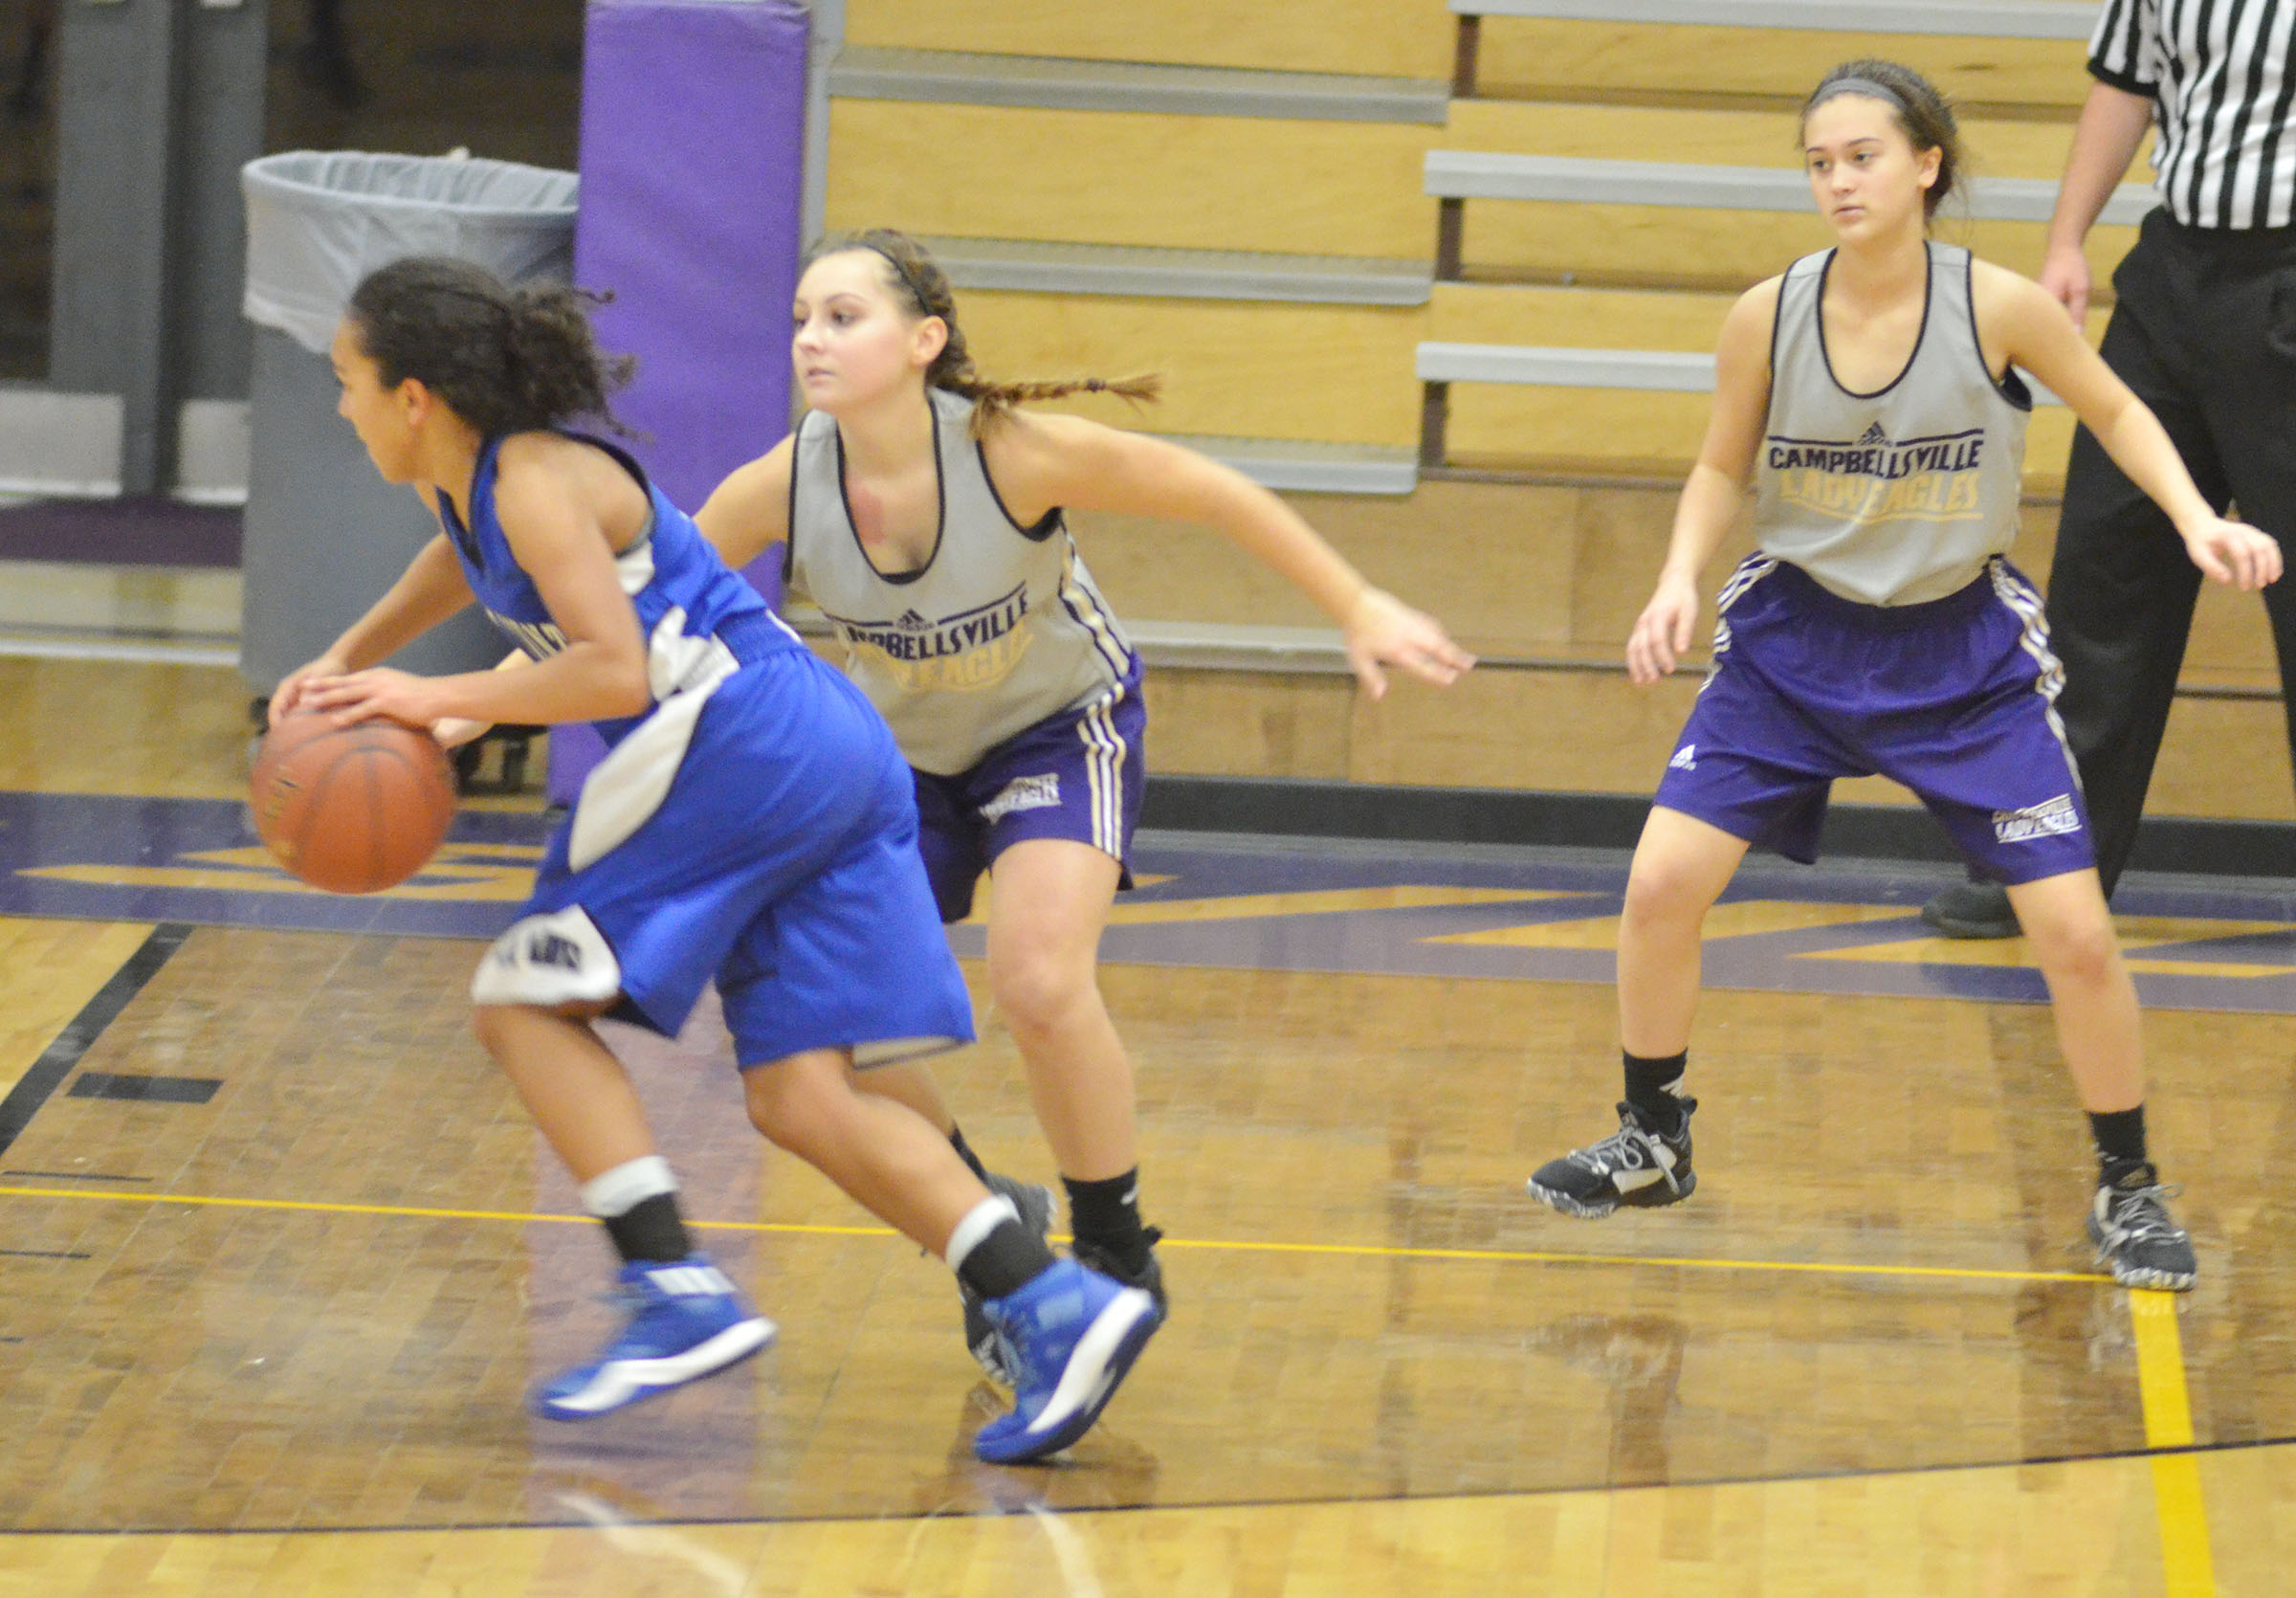 CHS sophomore Reagan Knight, at left, and freshman Bailey Thompson play defense.